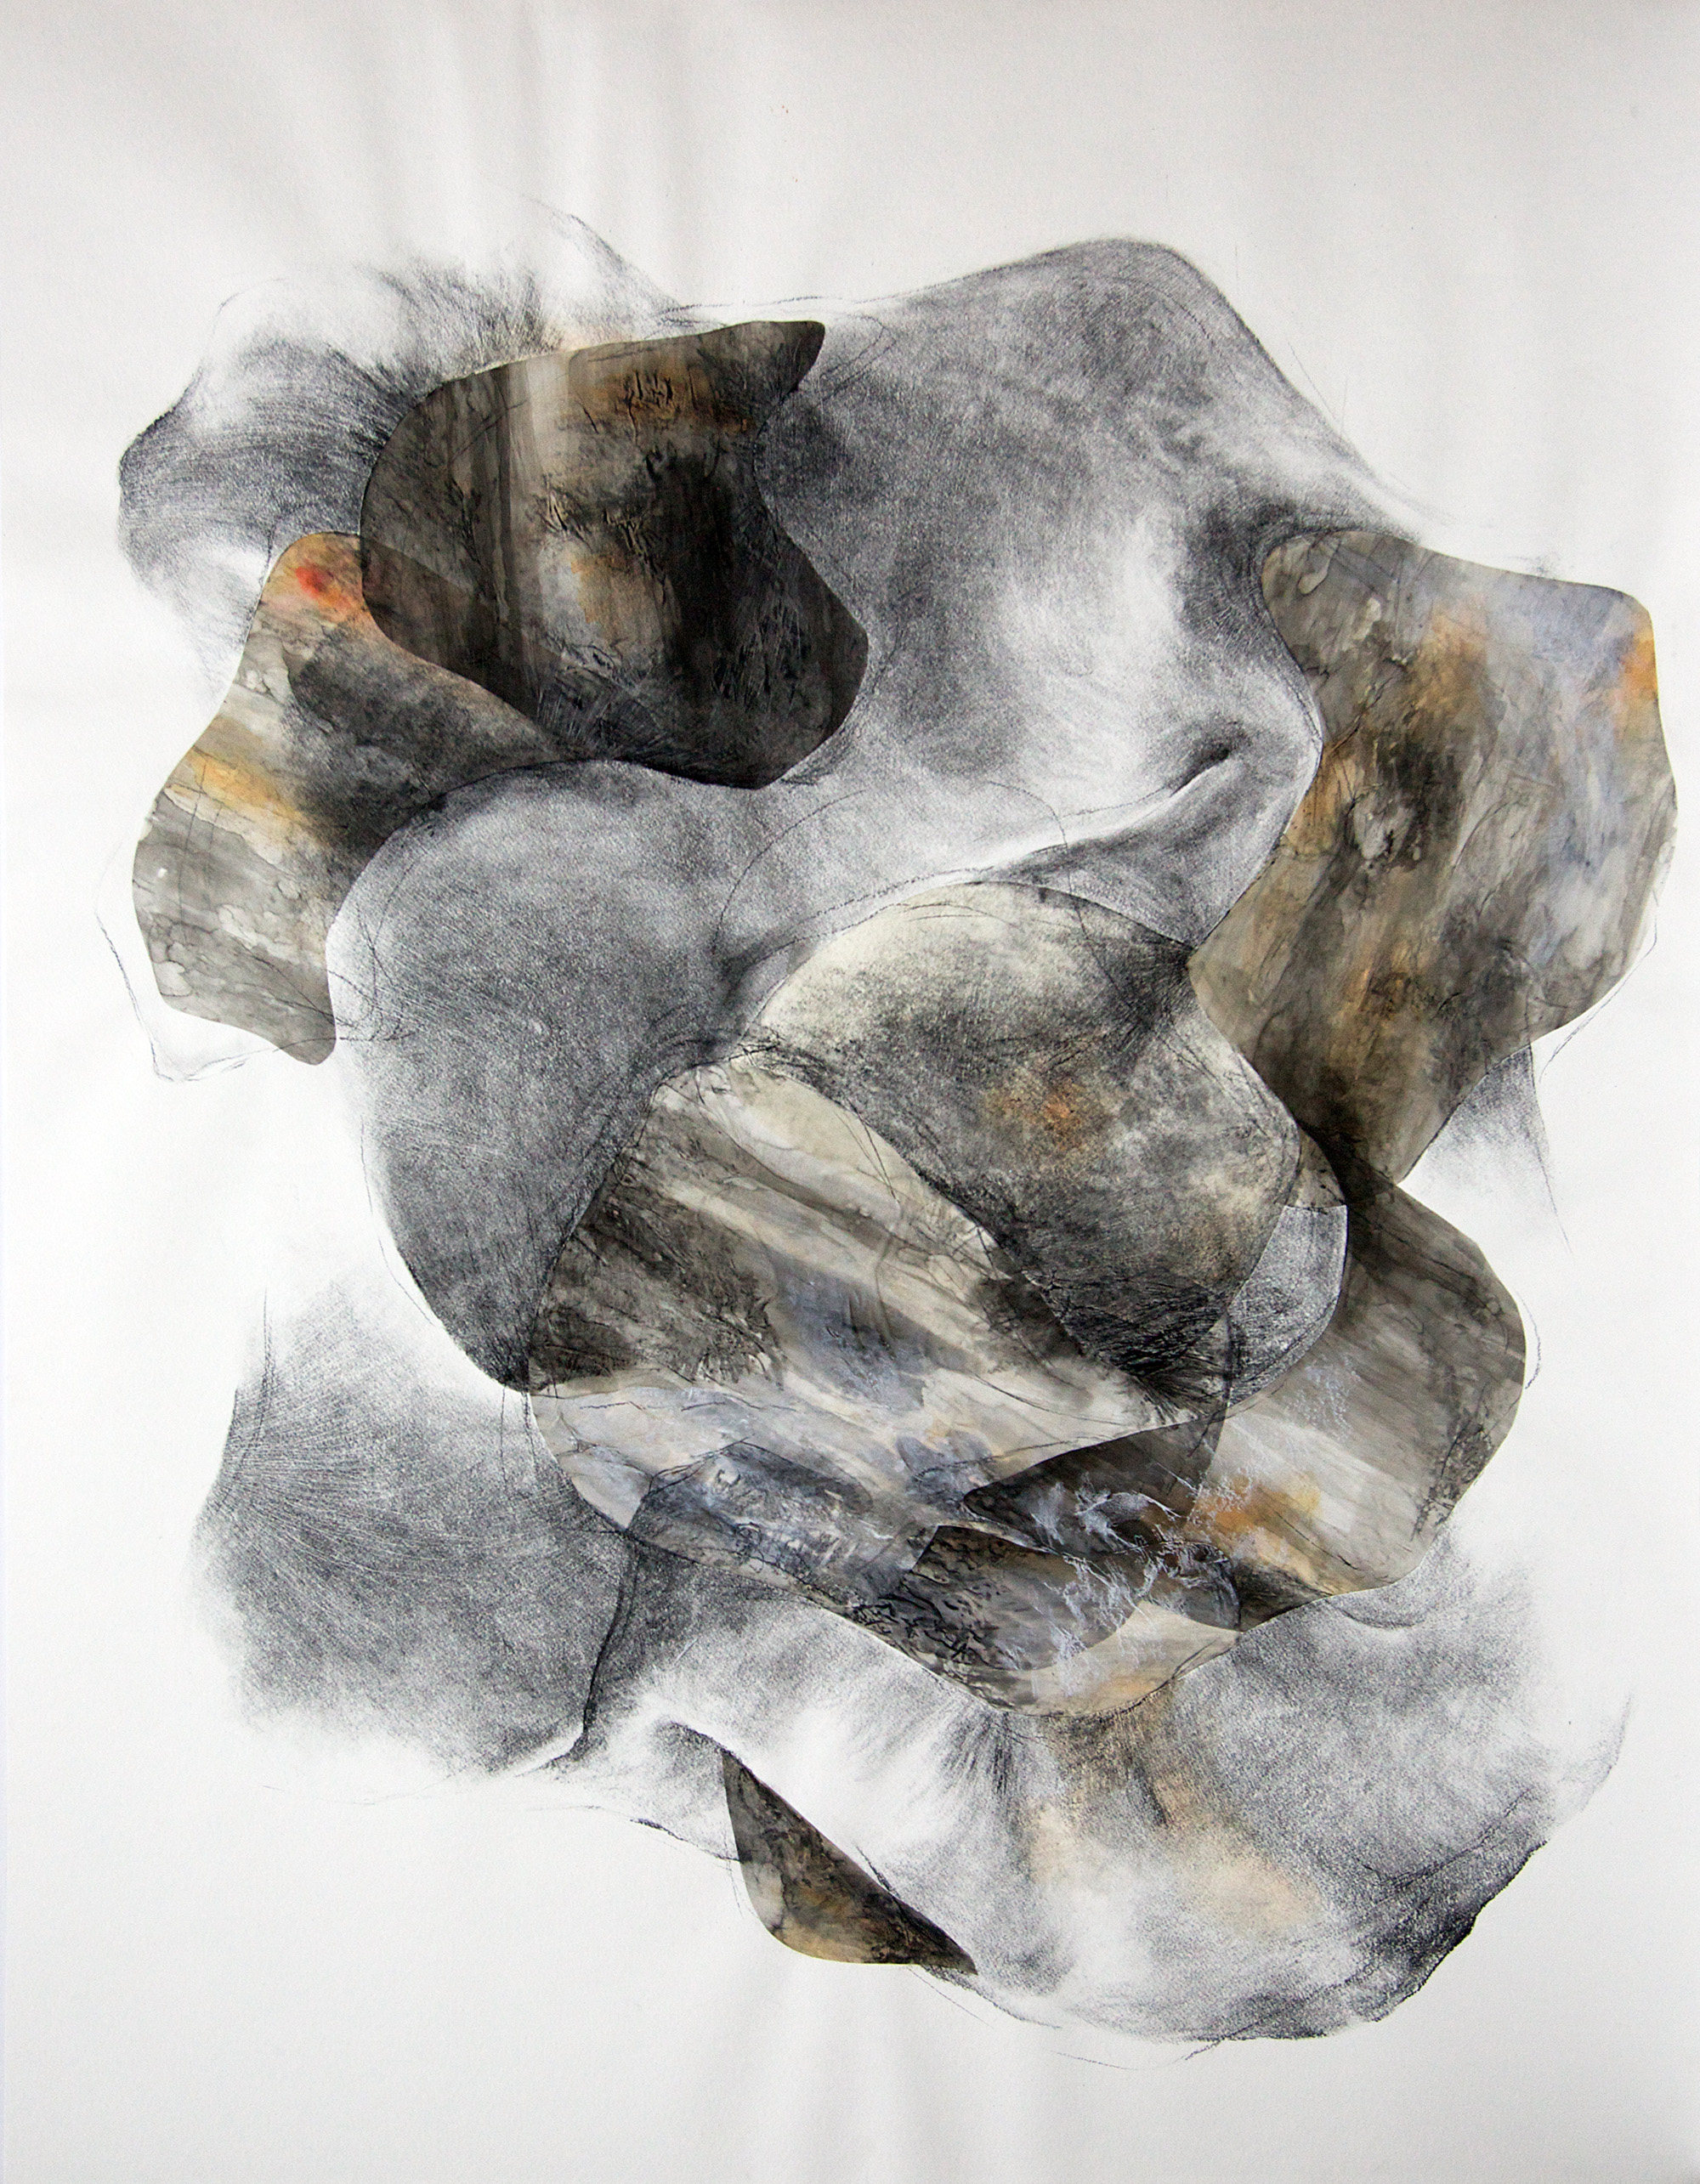 Voracious embrace III  Charcoal, ink and watercolor on paper. 127 x 100cm. 2012